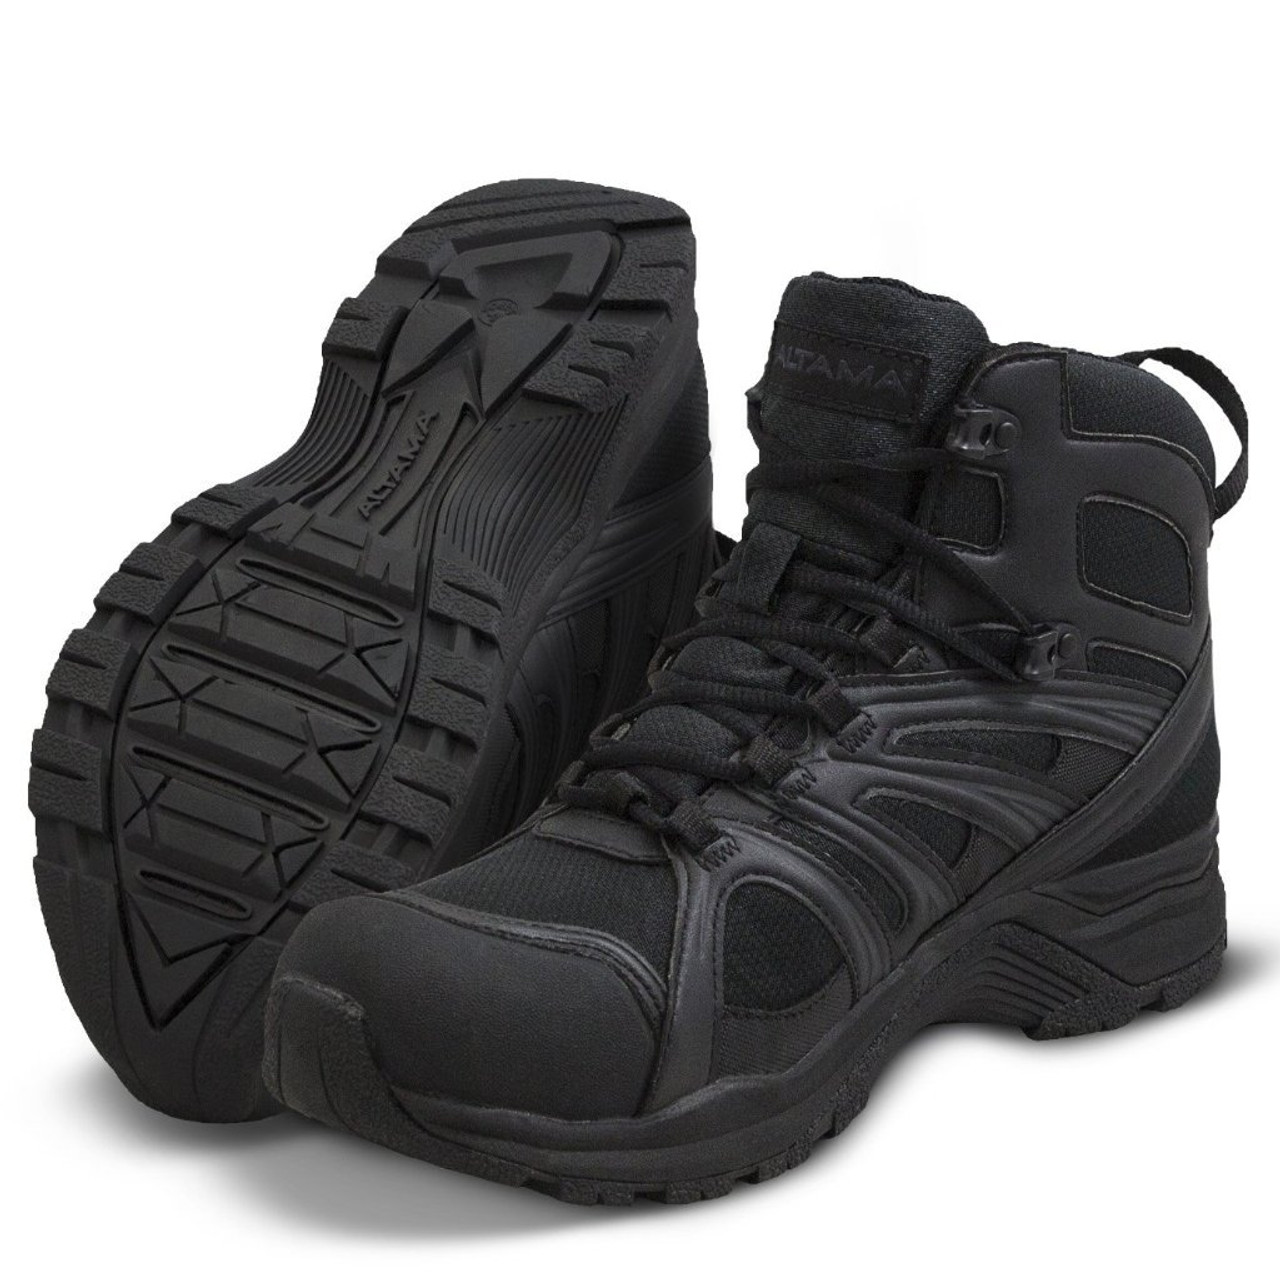 """ALTAMA ABOOTTABAD TRAIL MID WATERPROOF 6"""" TACTICAL BOOTS 353201 / BLACK"""